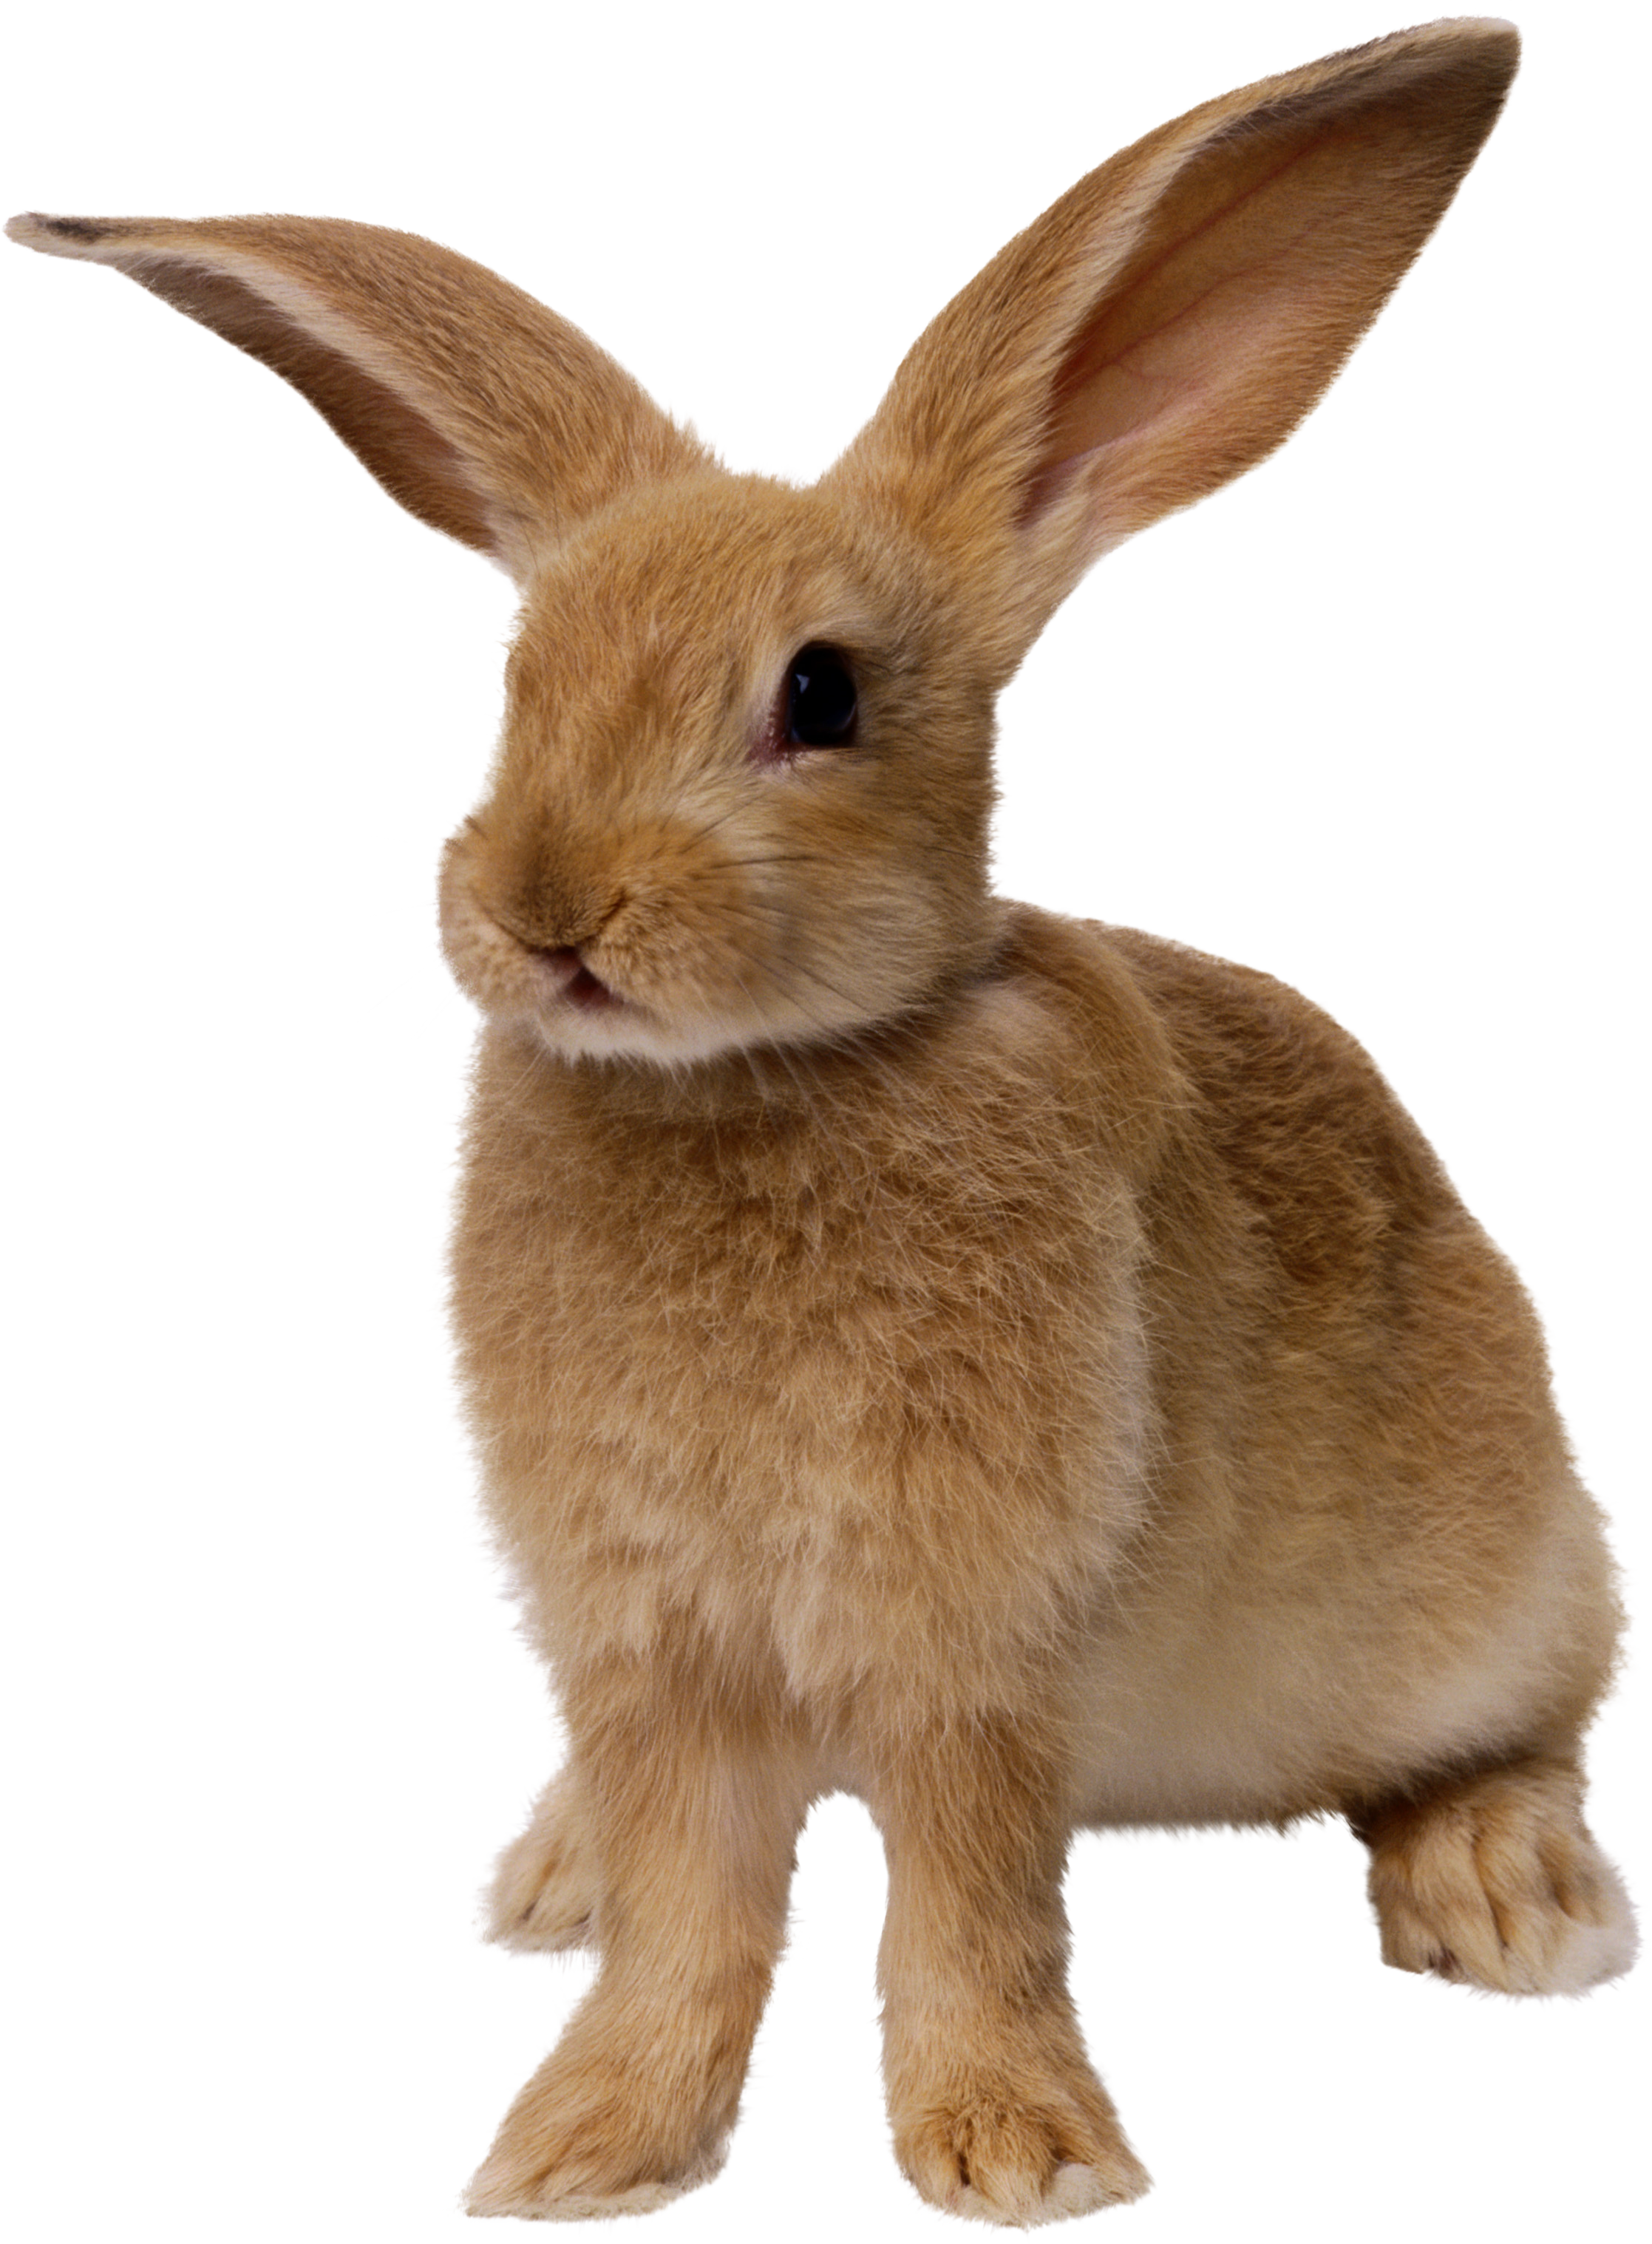 Rabbit png images free. Clipart bunny transparent background